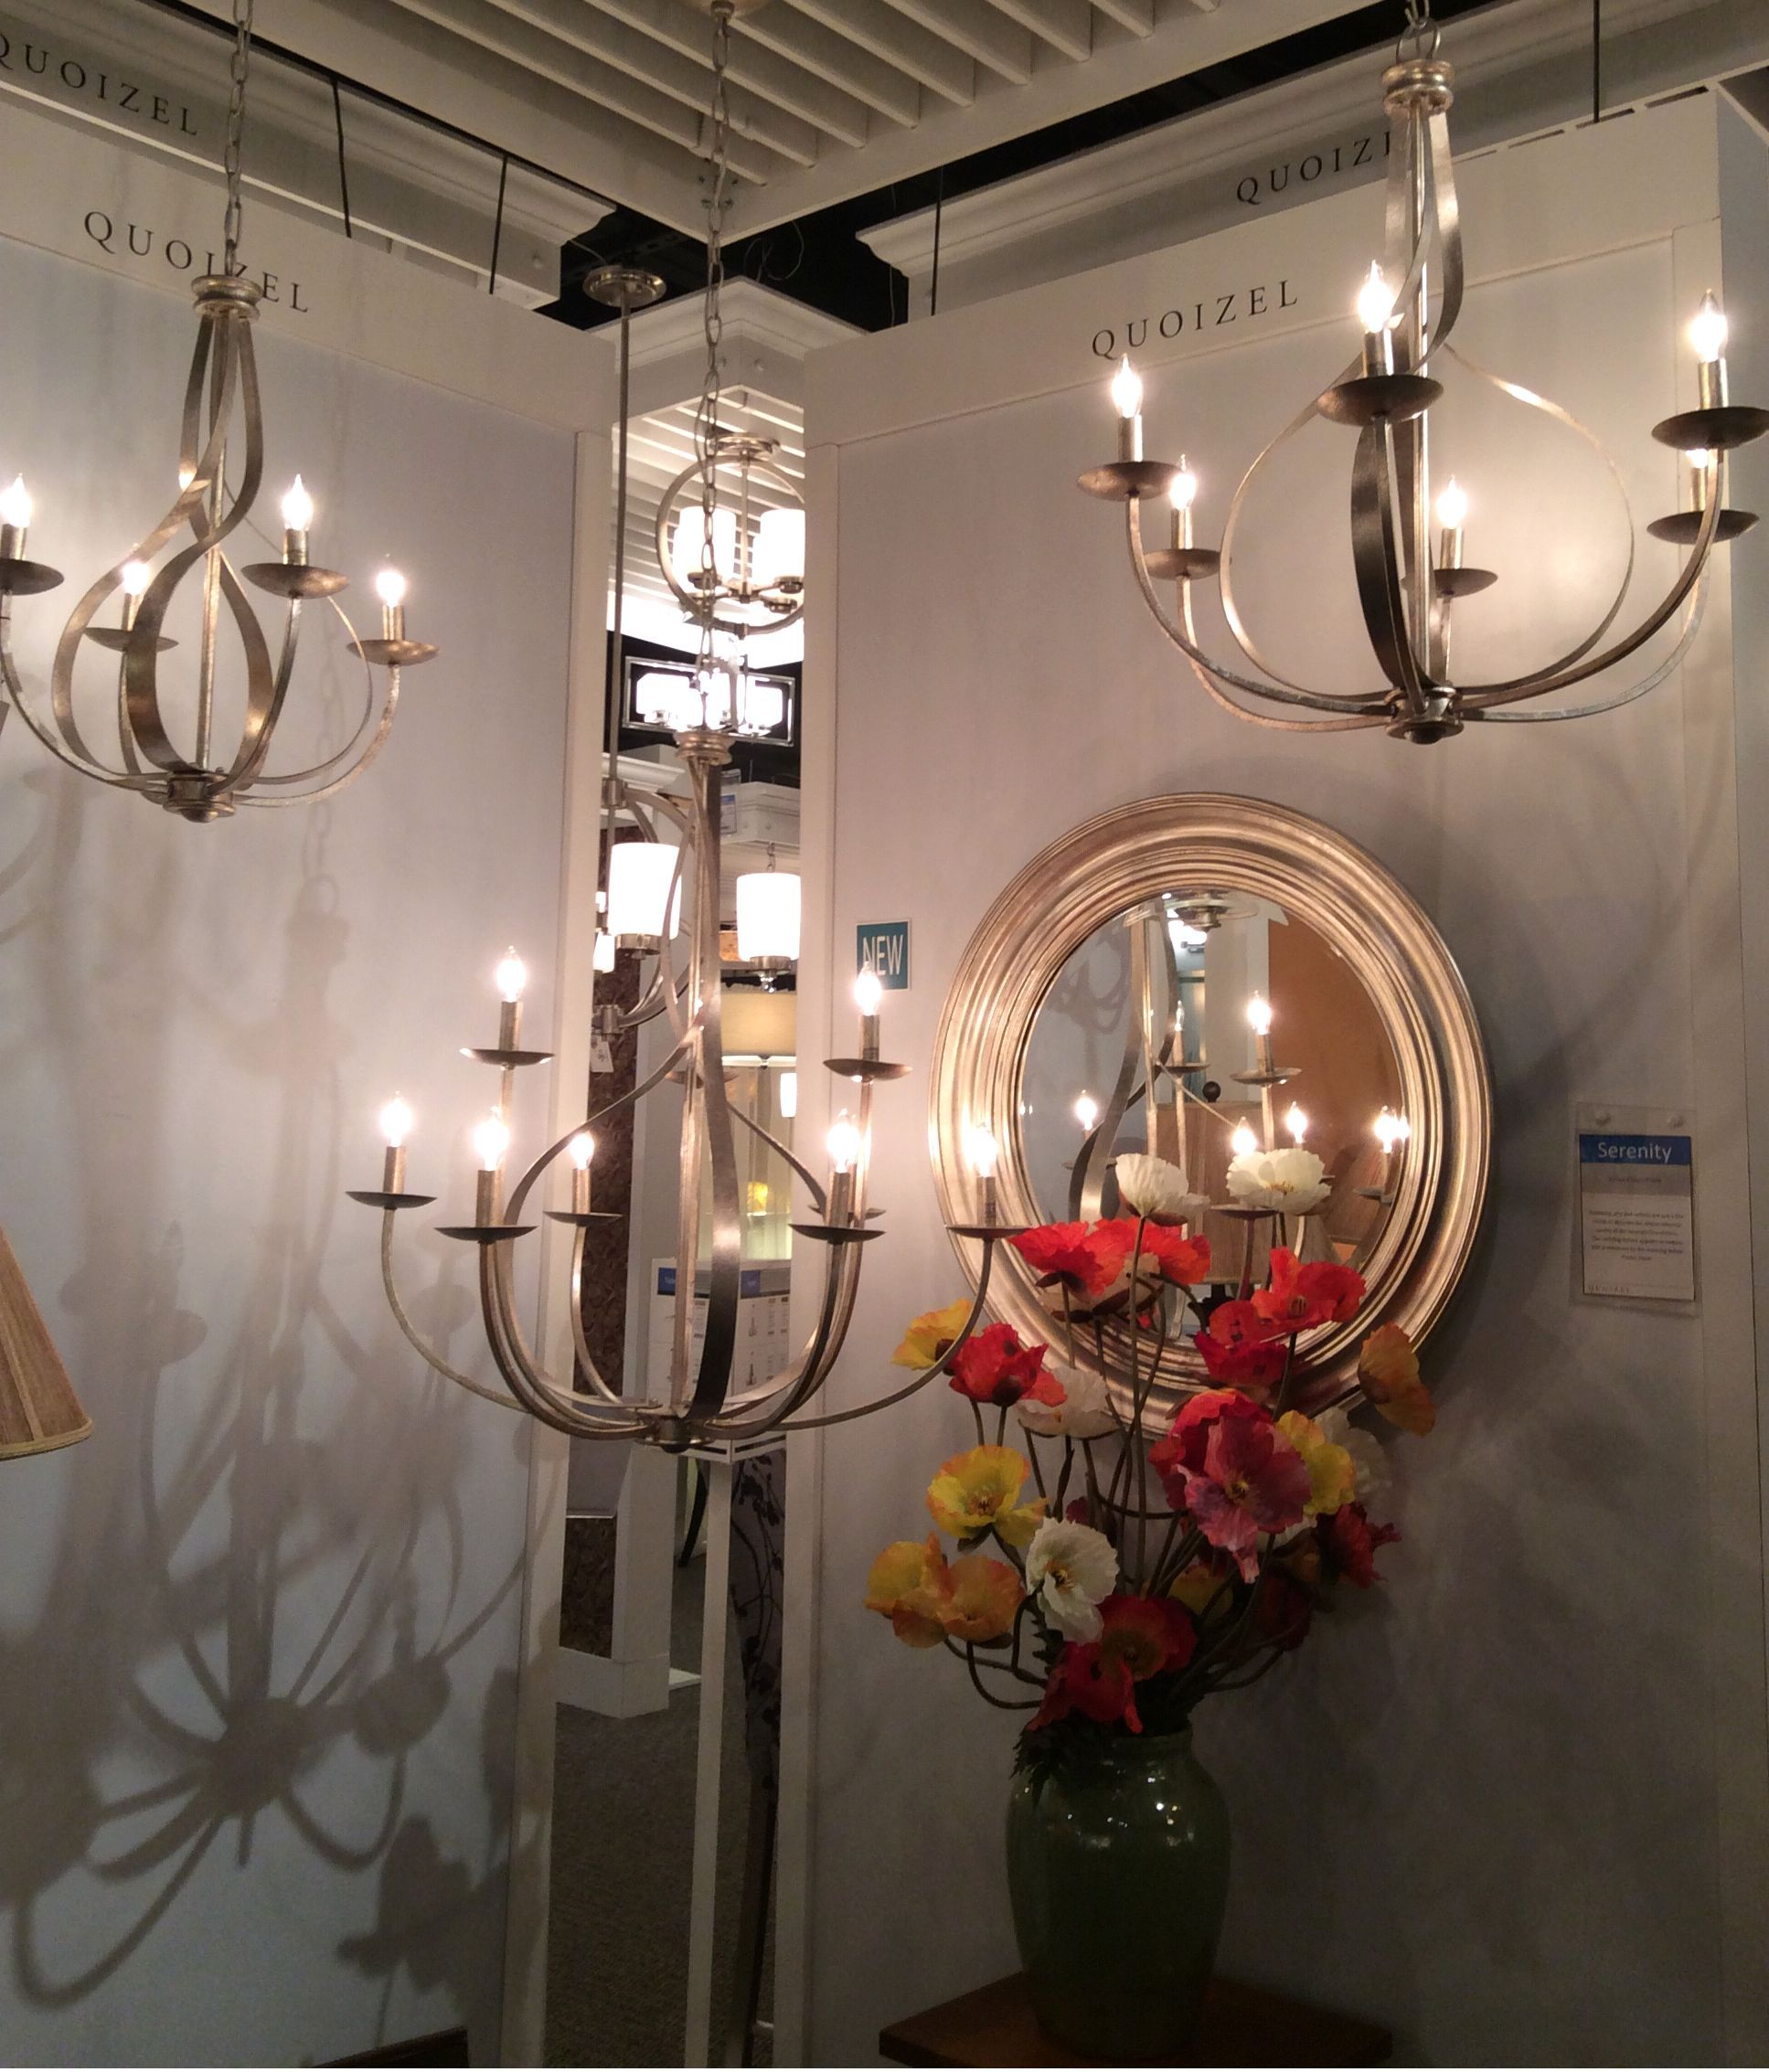 The new Serenity collection from Quoizel features flowing lines & a  beautiful nickel finish #JuneSneakPeek